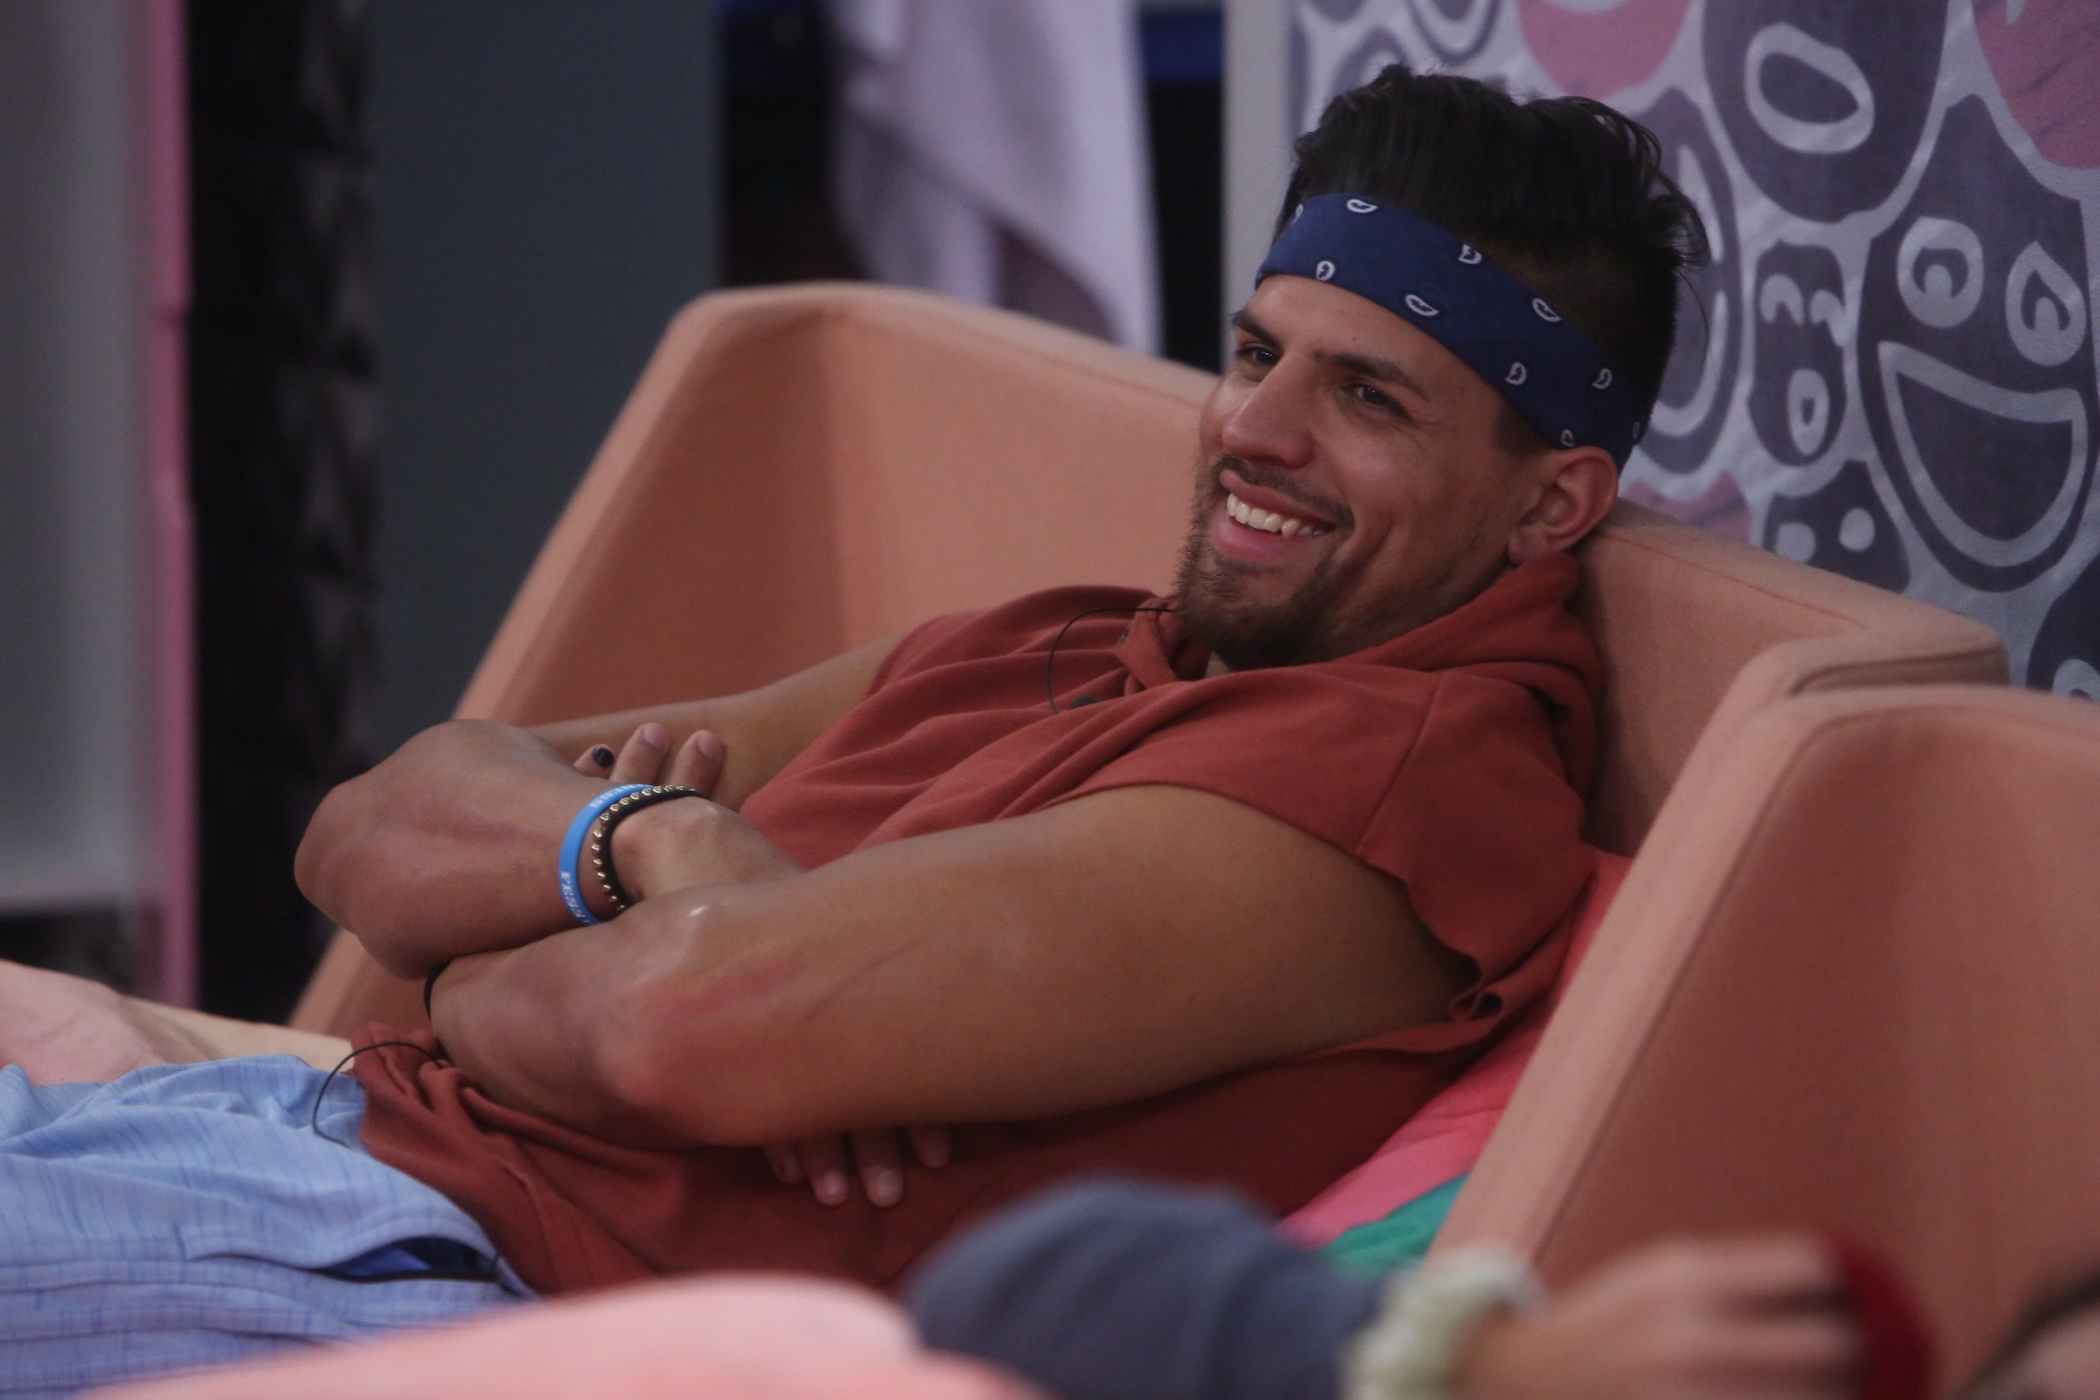 Fessy Shafaat, part of MTV's 'The Challenge' Season 37 cast, laughing while sitting on a couch in the 'Big Brother' house